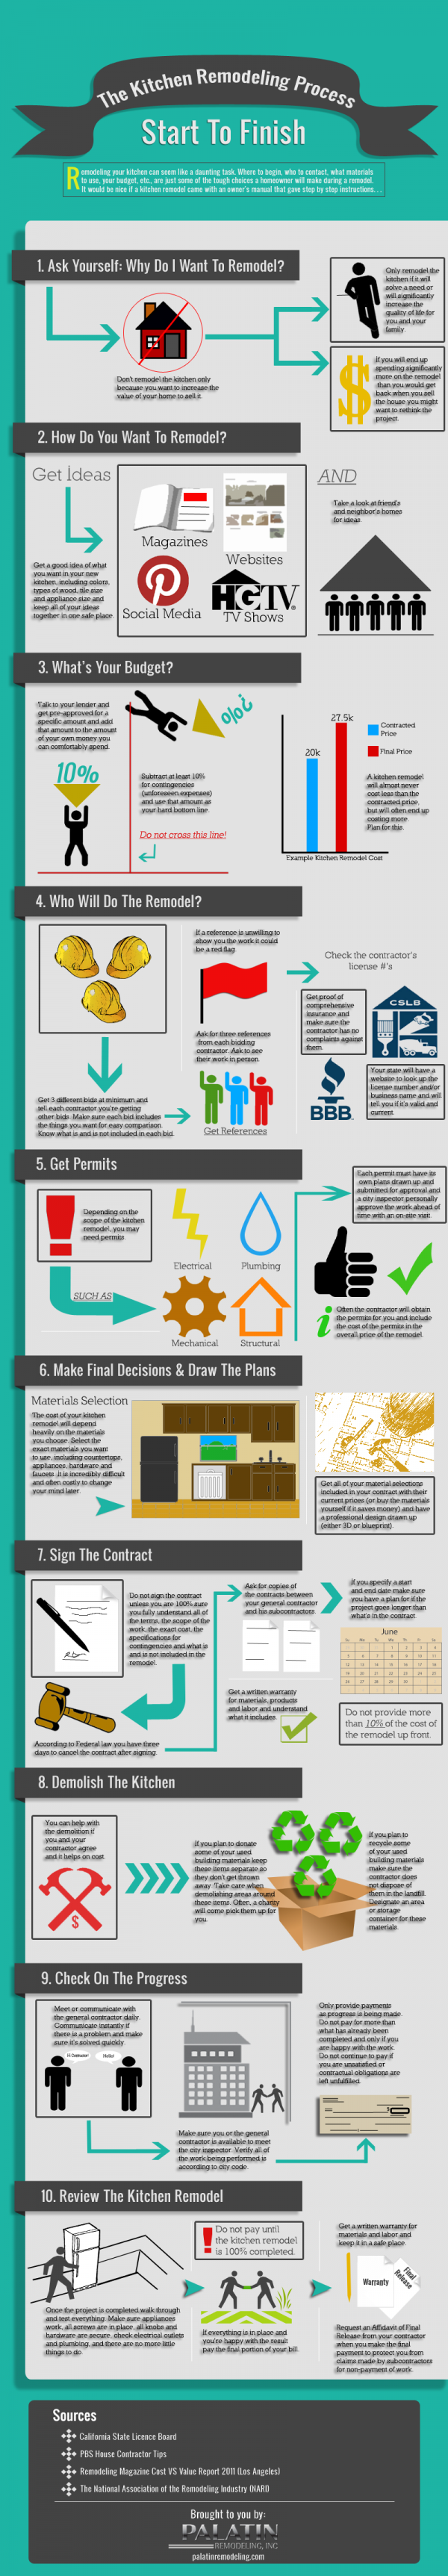 Kitchen-Remodeling-Infographic